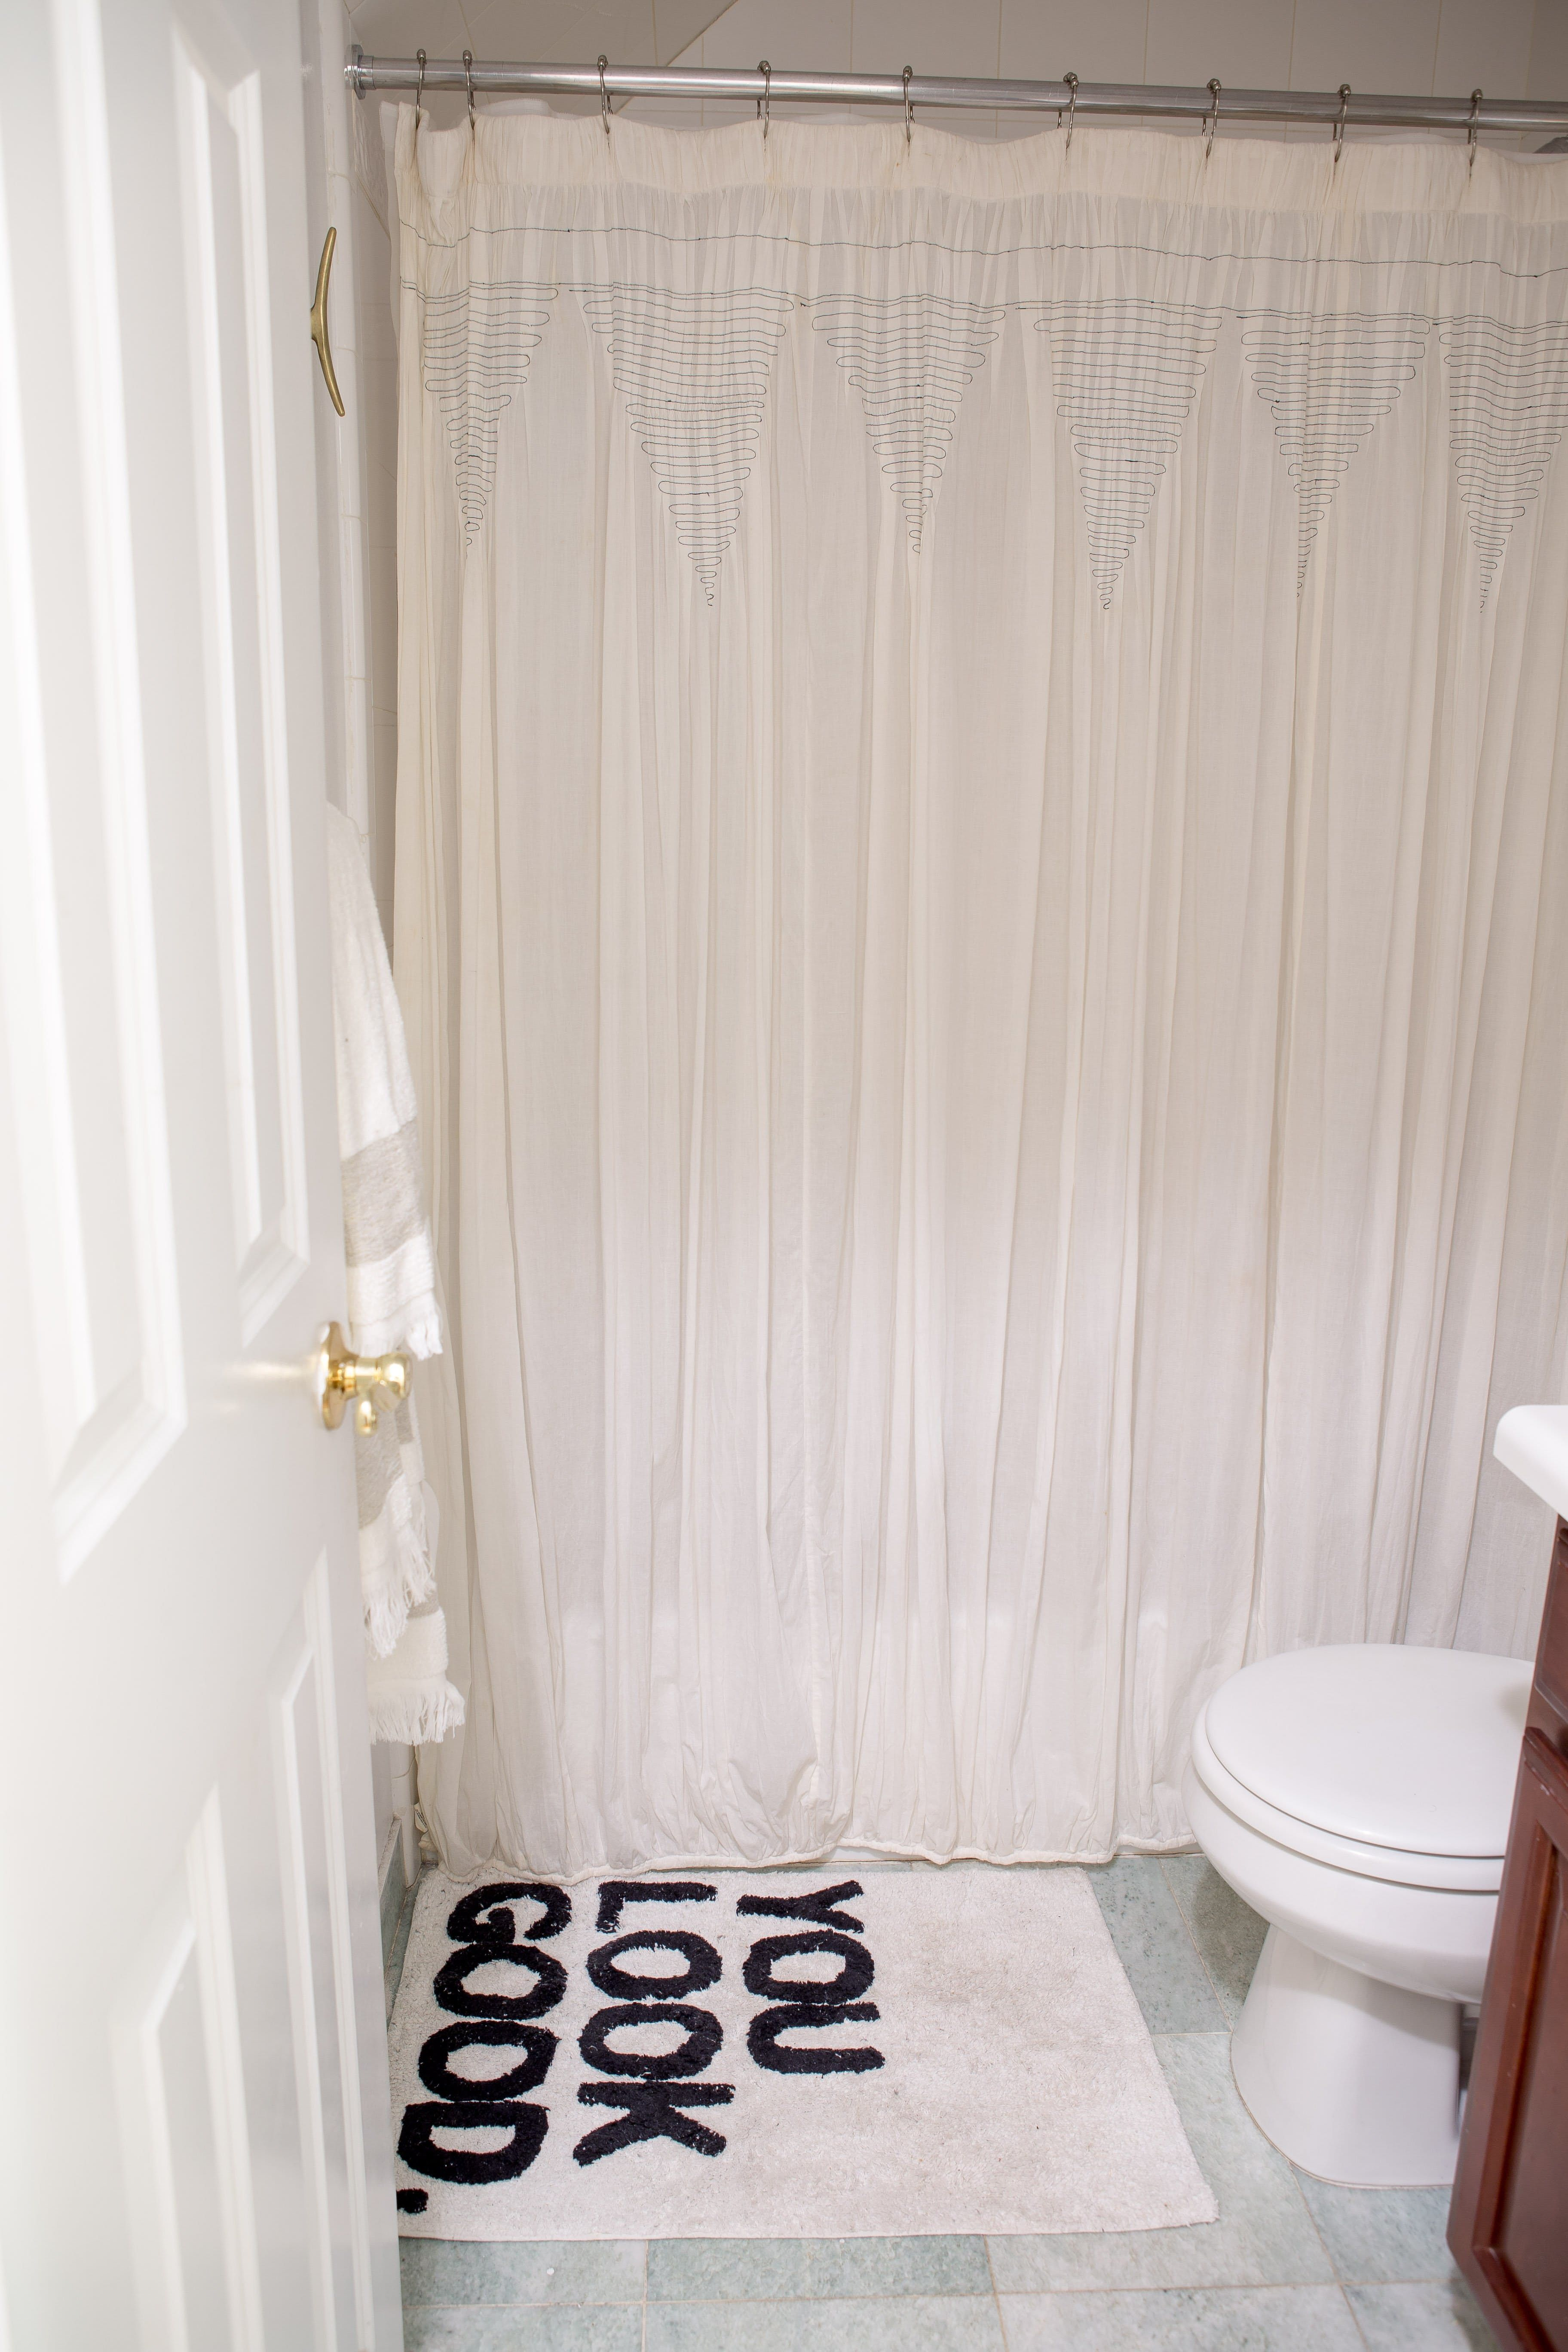 10 Styling Ideas for Small Rental Bathrooms